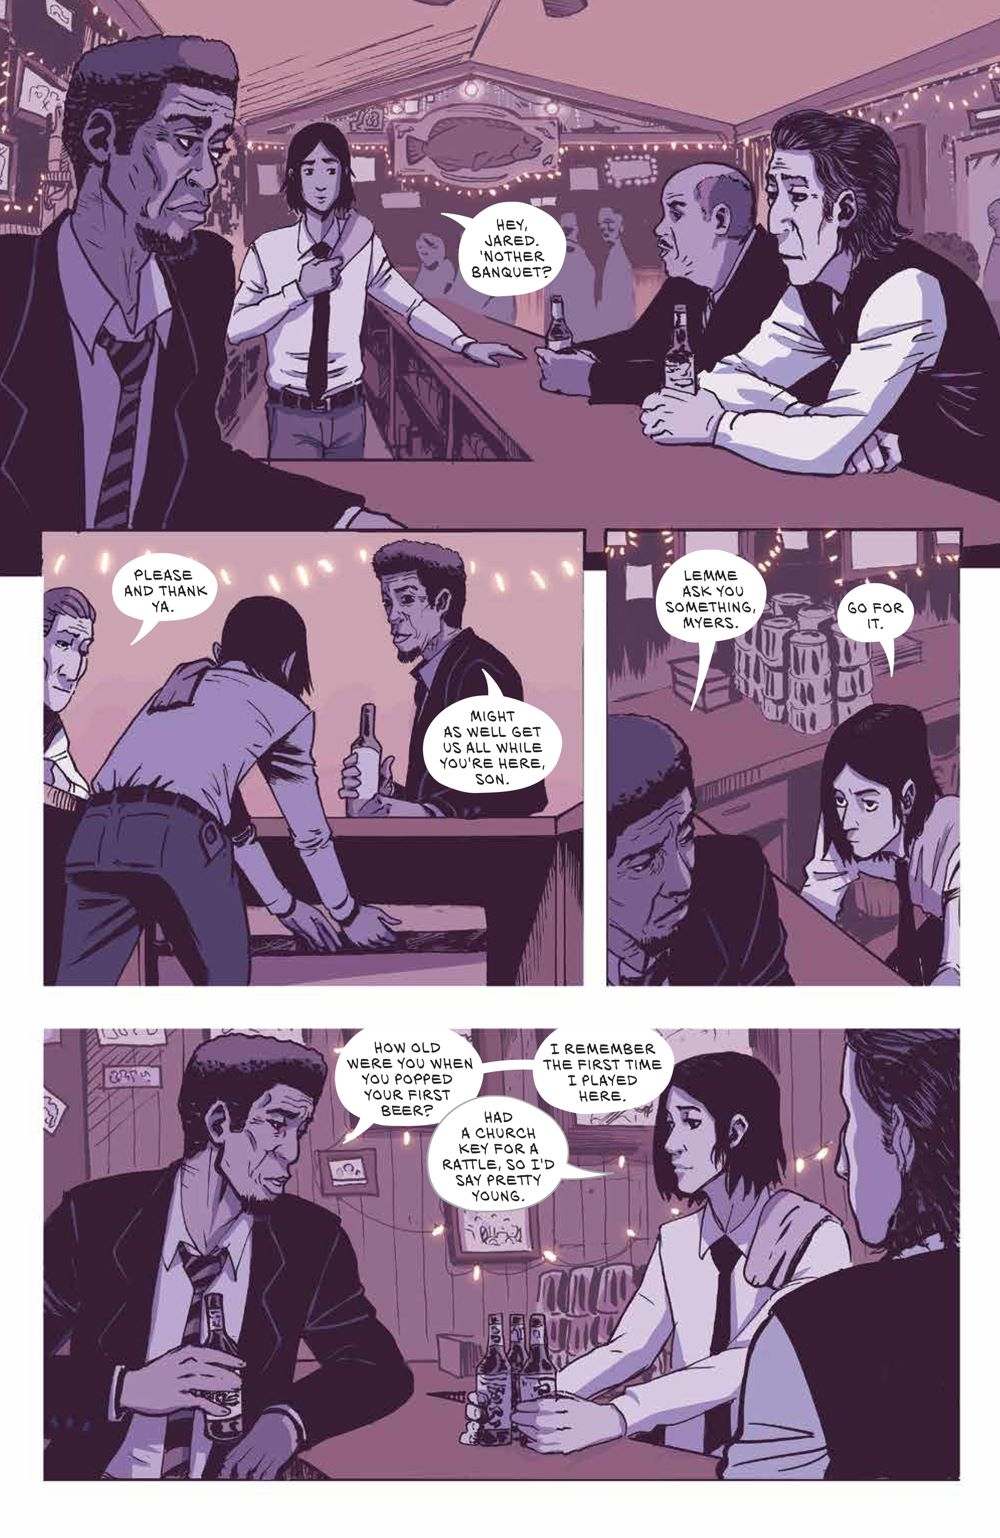 DownRiverPeople_SC_PRESS_15 ComicList Previews: THE DOWN RIVER PEOPLE GN